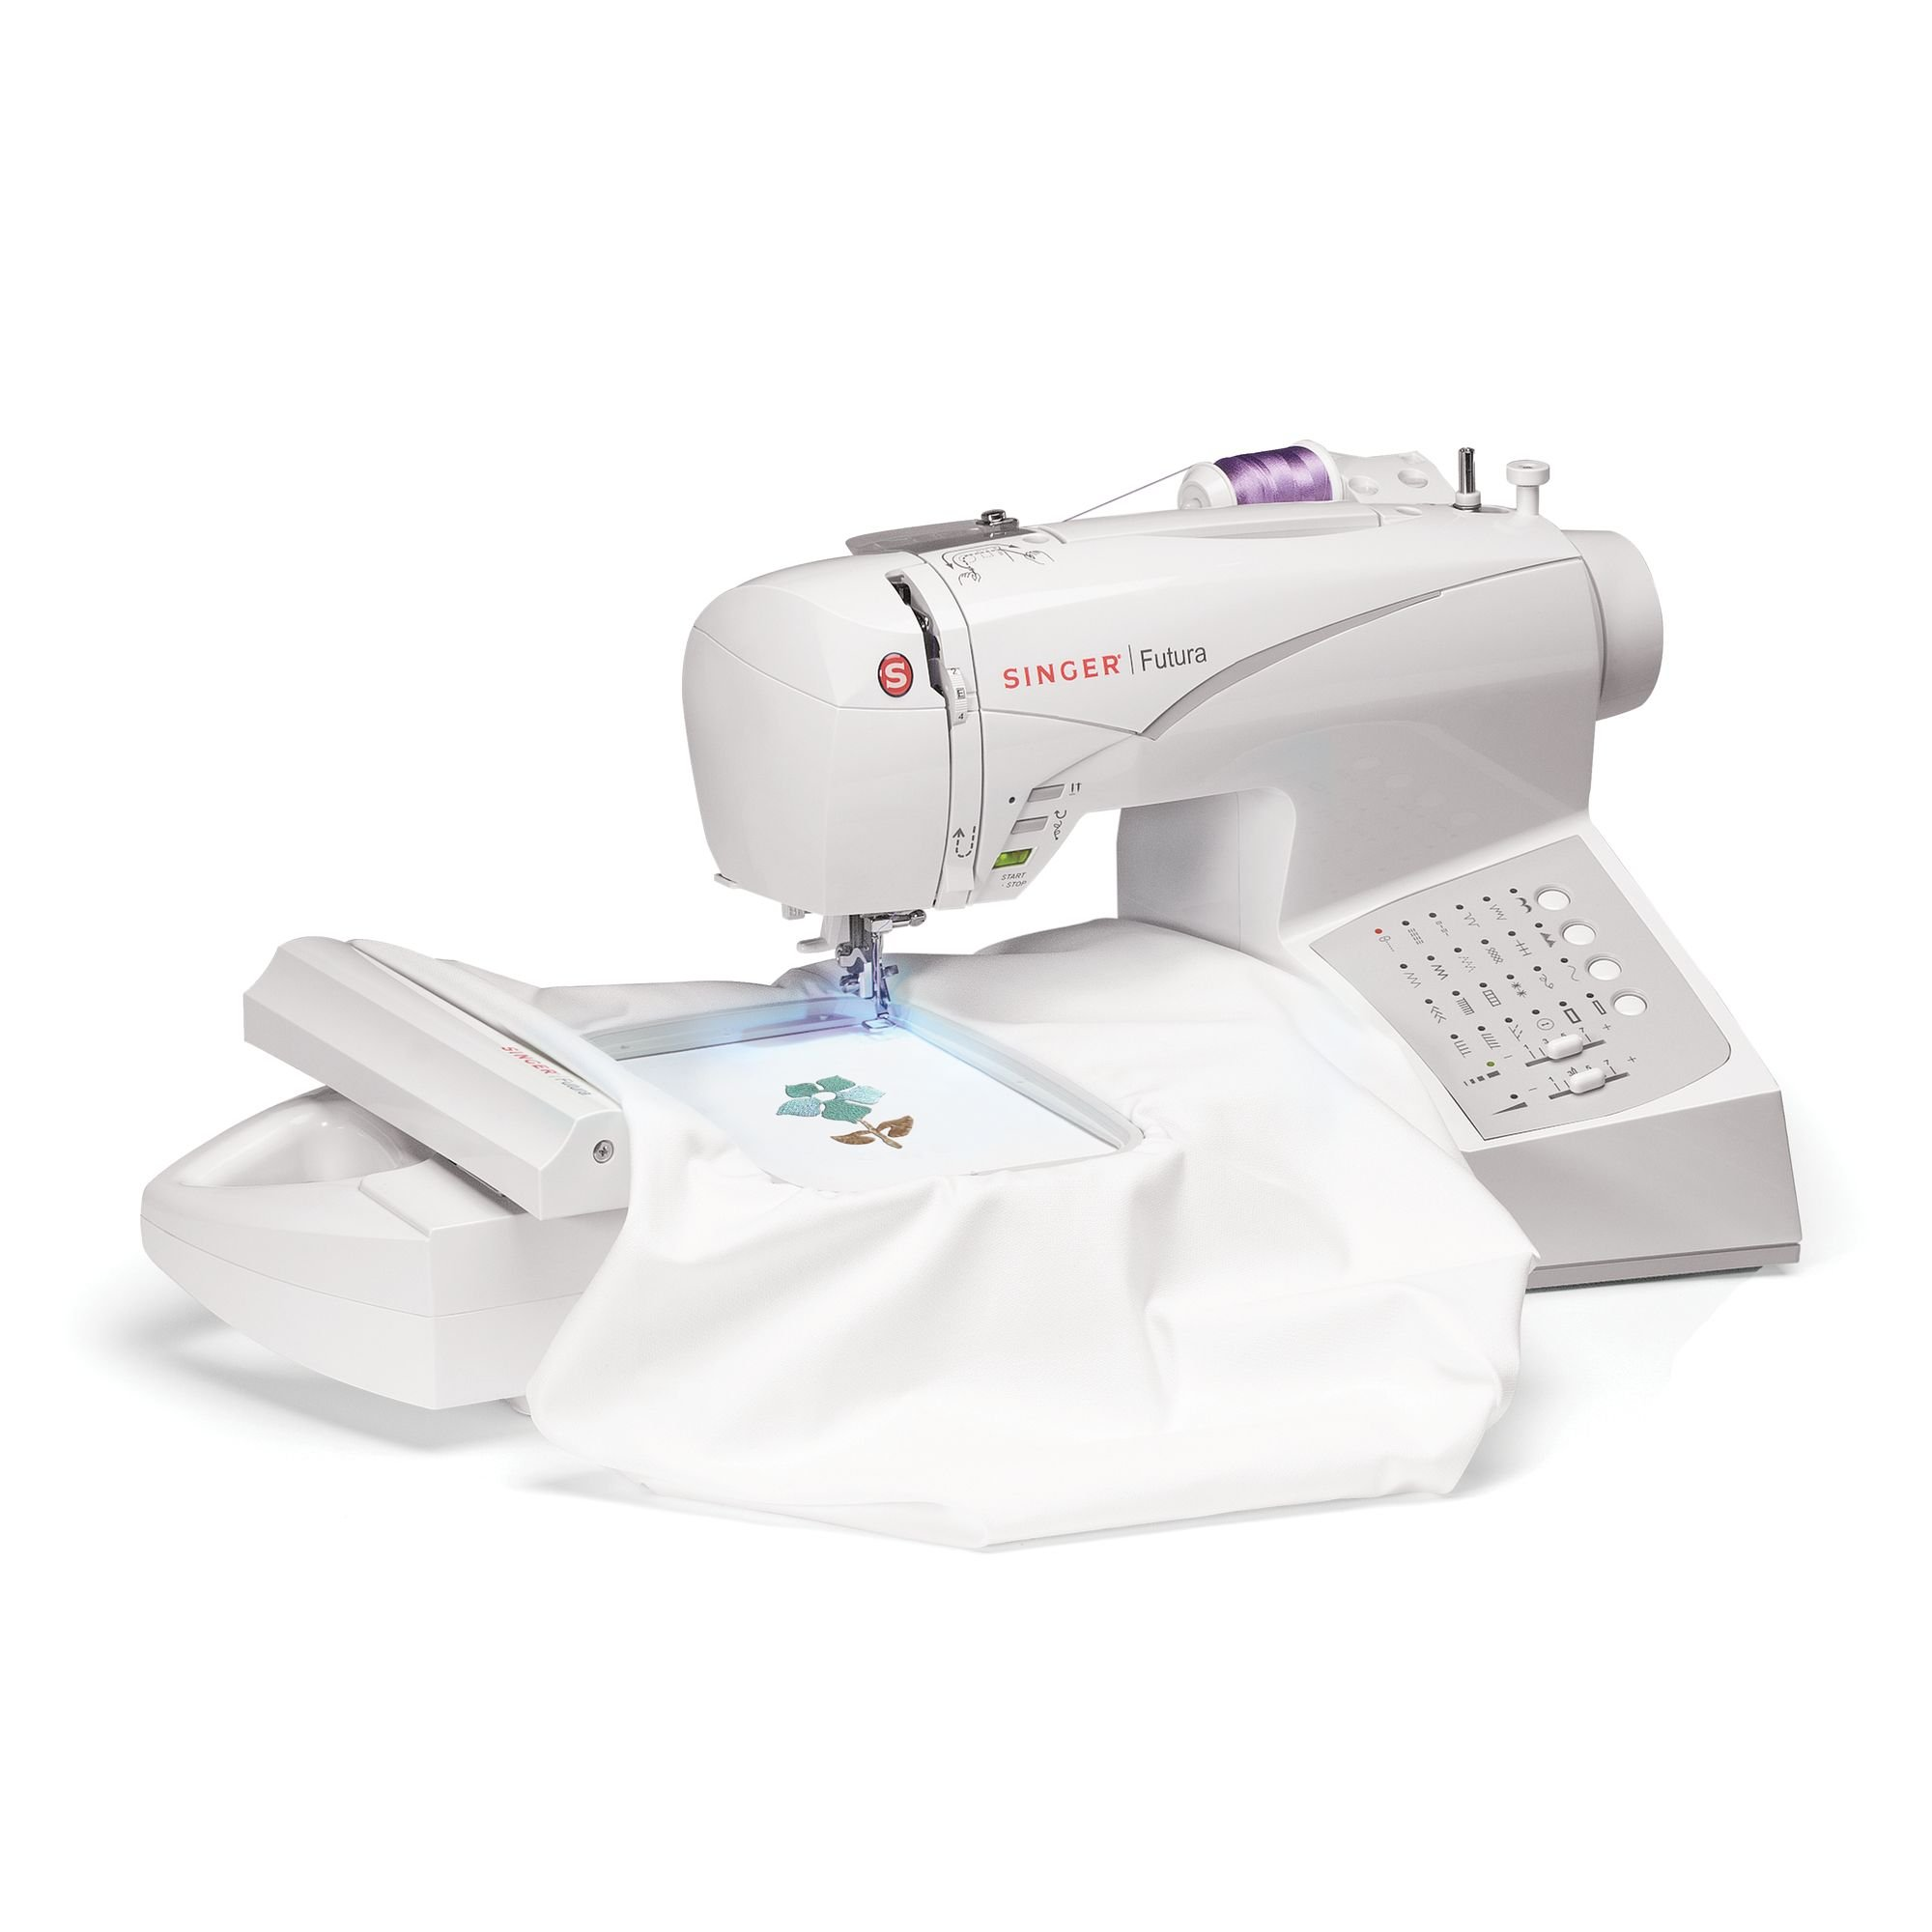 Get Quotations · Singer CE-150 Futura Sewing and Embroidery Machine